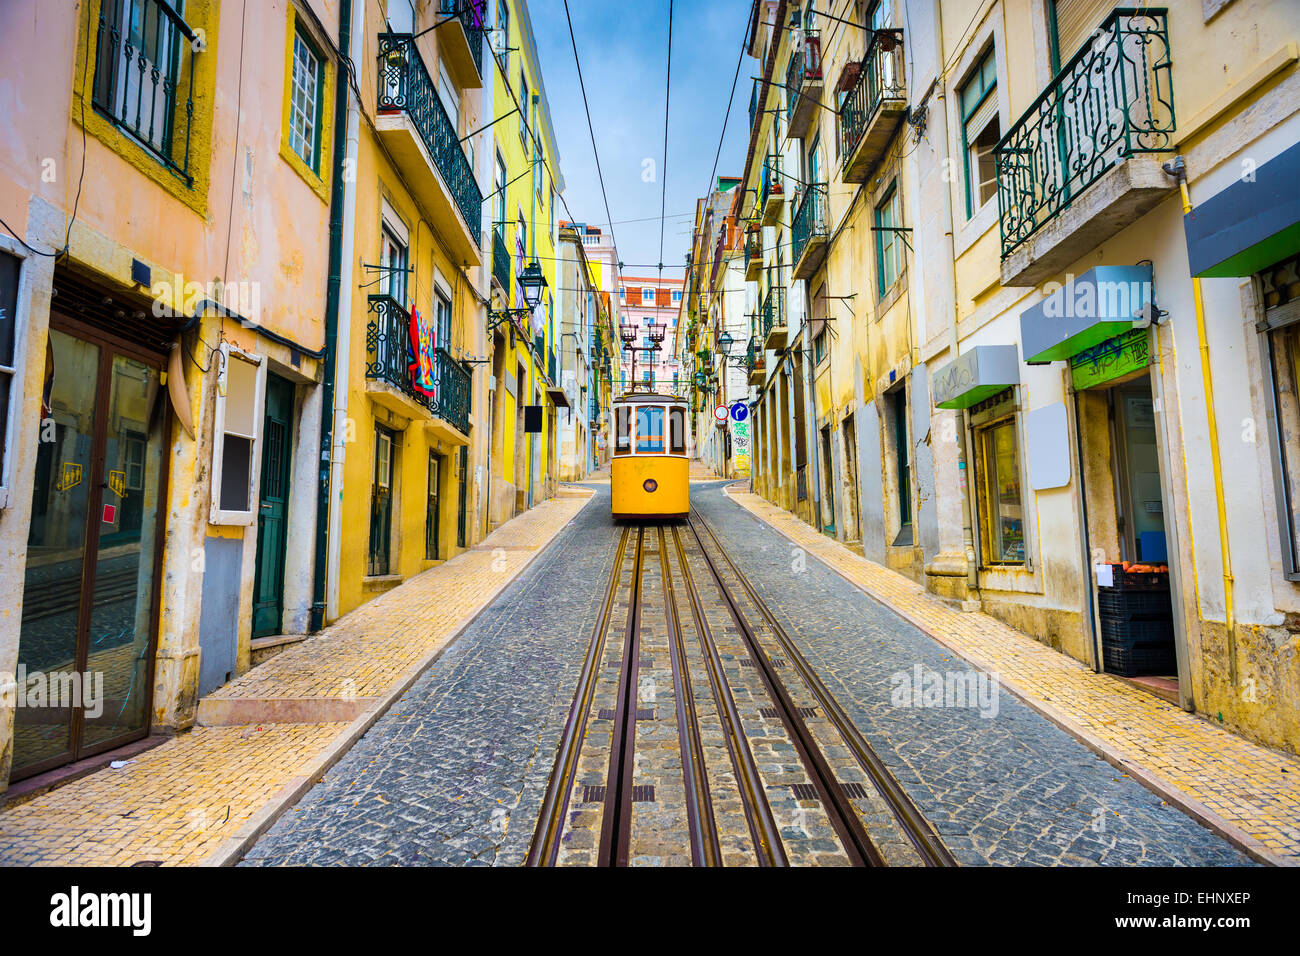 Lisbon, Portugal old town streets and street car. - Stock Image